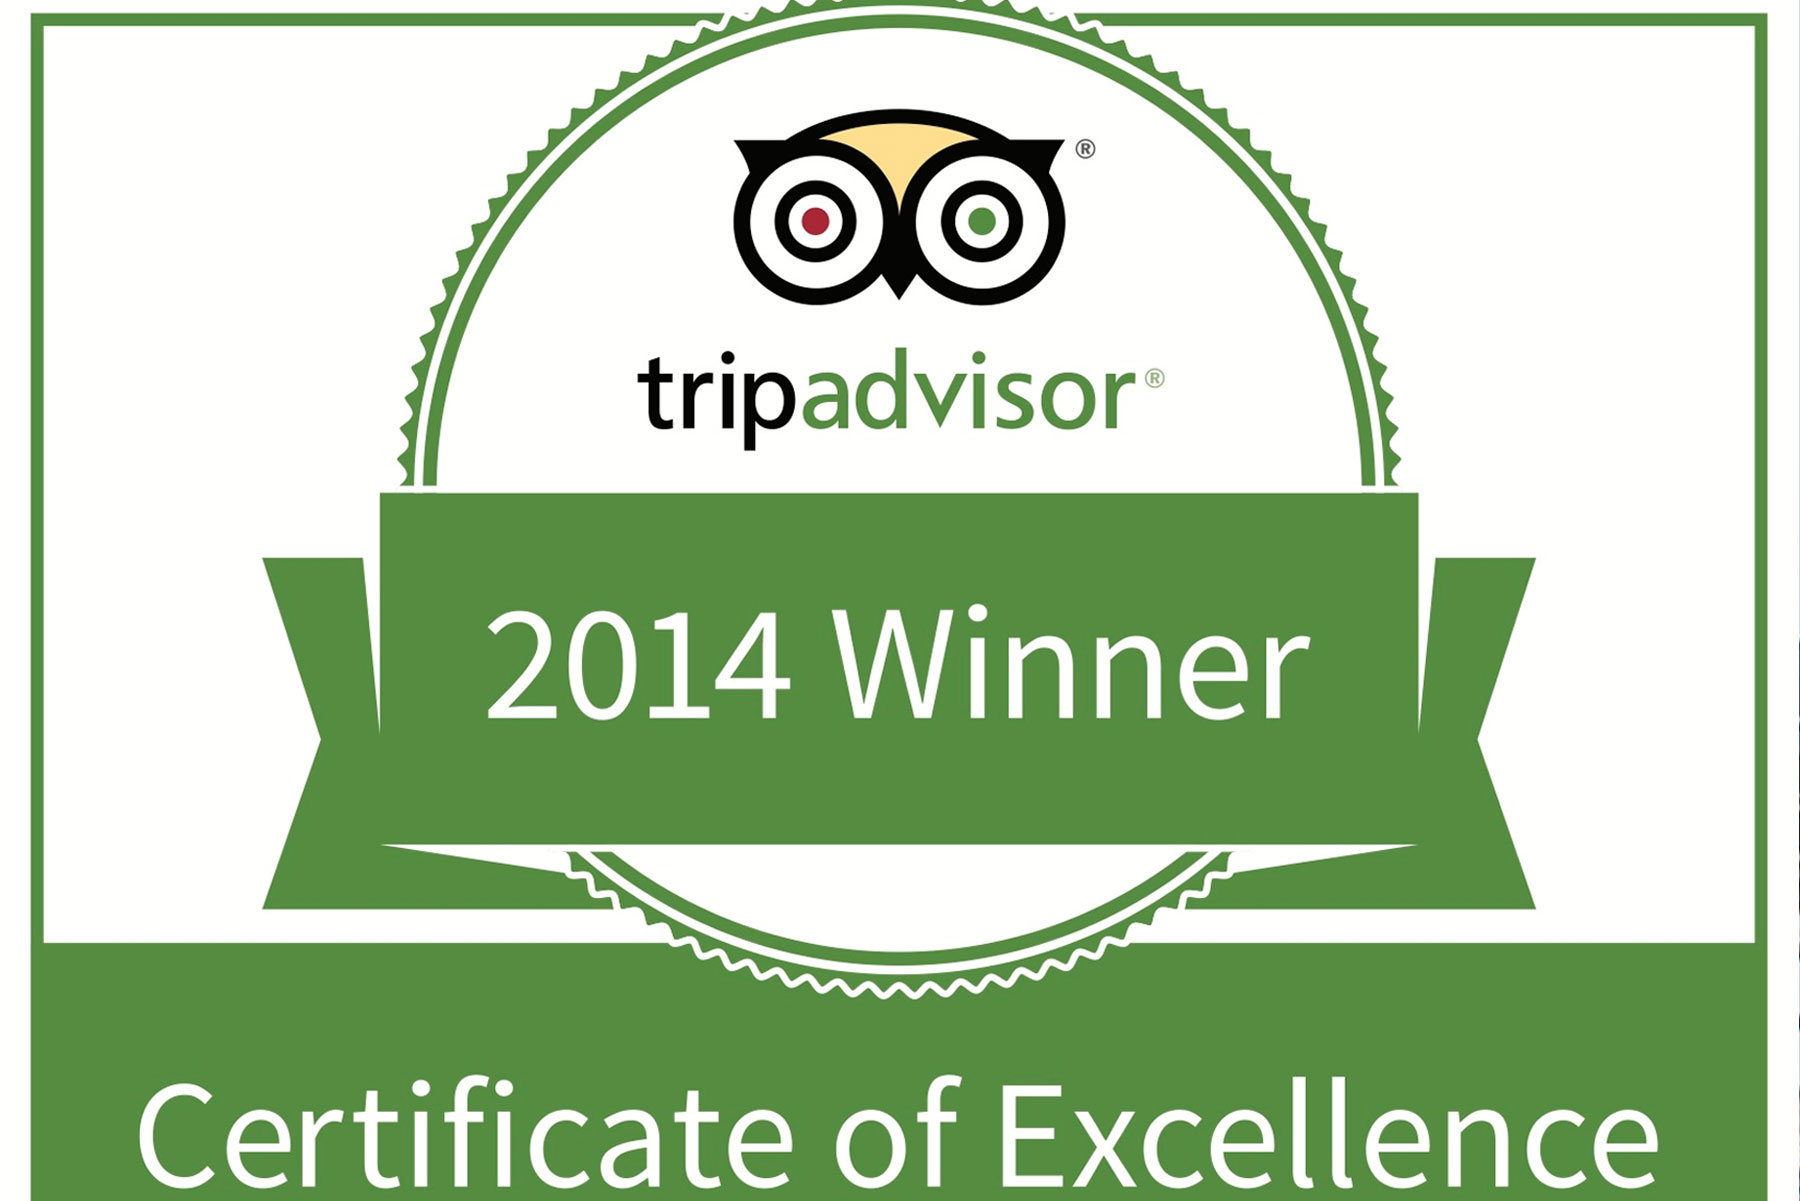 CRISTAL HOTEL ABU DHABI AWARDED 2014 TRIPADVISOR CERTIFICATE OF EXCELLENCE